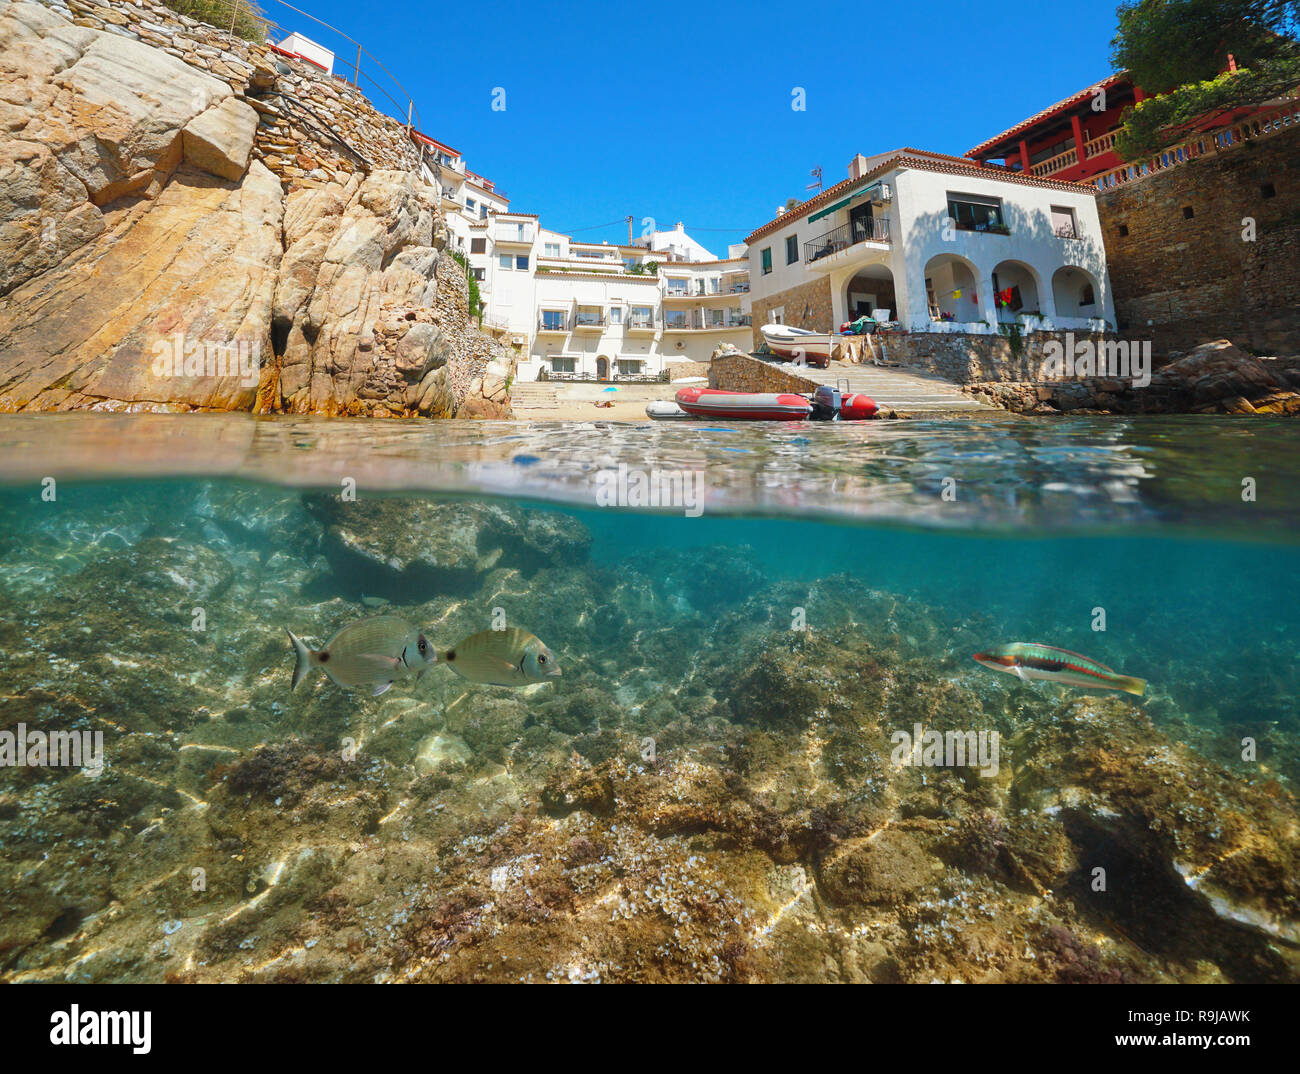 Spain Costa Brava small cove with houses and fish underwater, Fornells de Mar village, split view above and below surface, Catalonia,Mediterranean sea - Stock Image